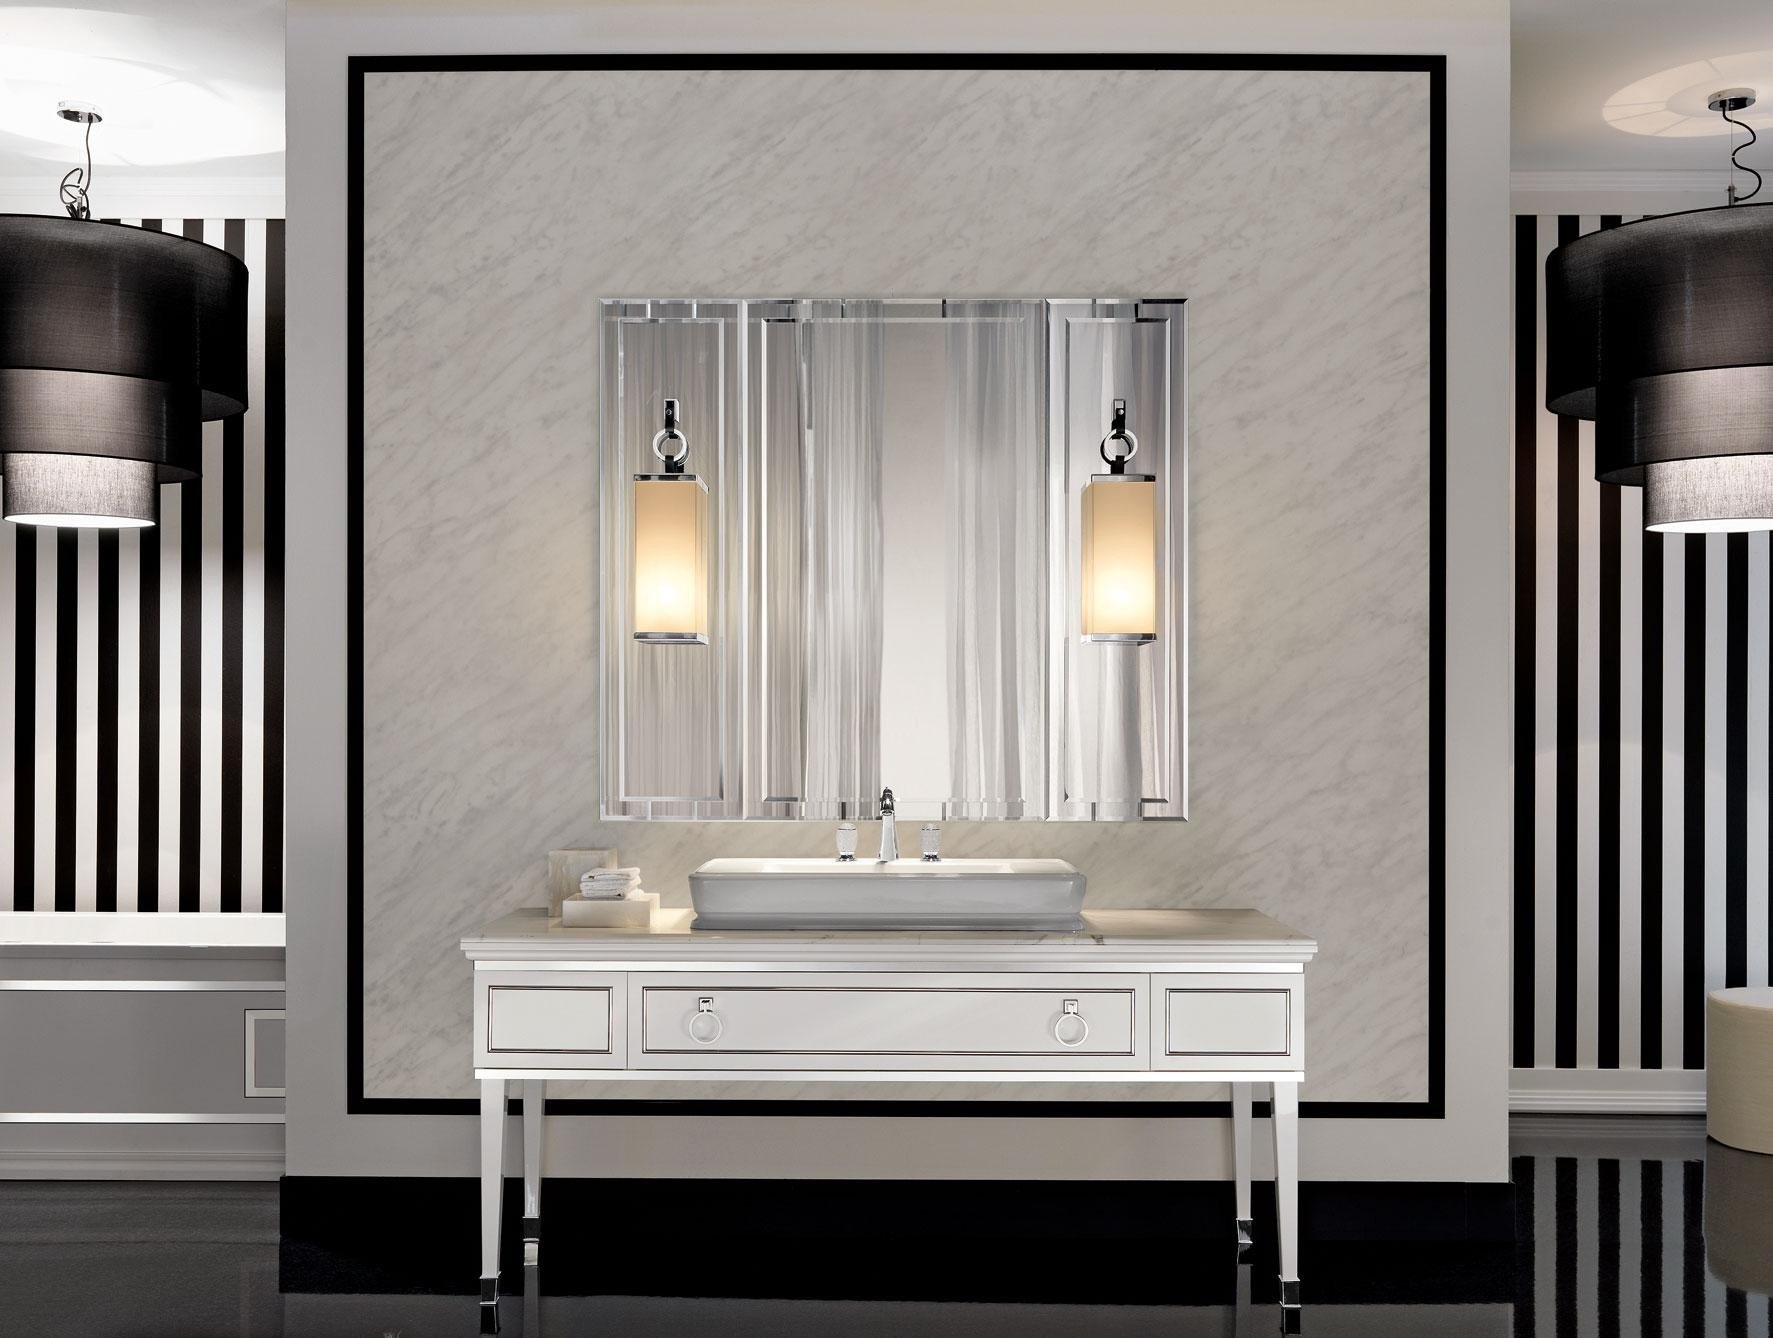 Lutetia L3 Luxury Art Deco Italian Bathroom Furniture In White Lacquer In Italian Wall Art For Bathroom (Image 13 of 20)